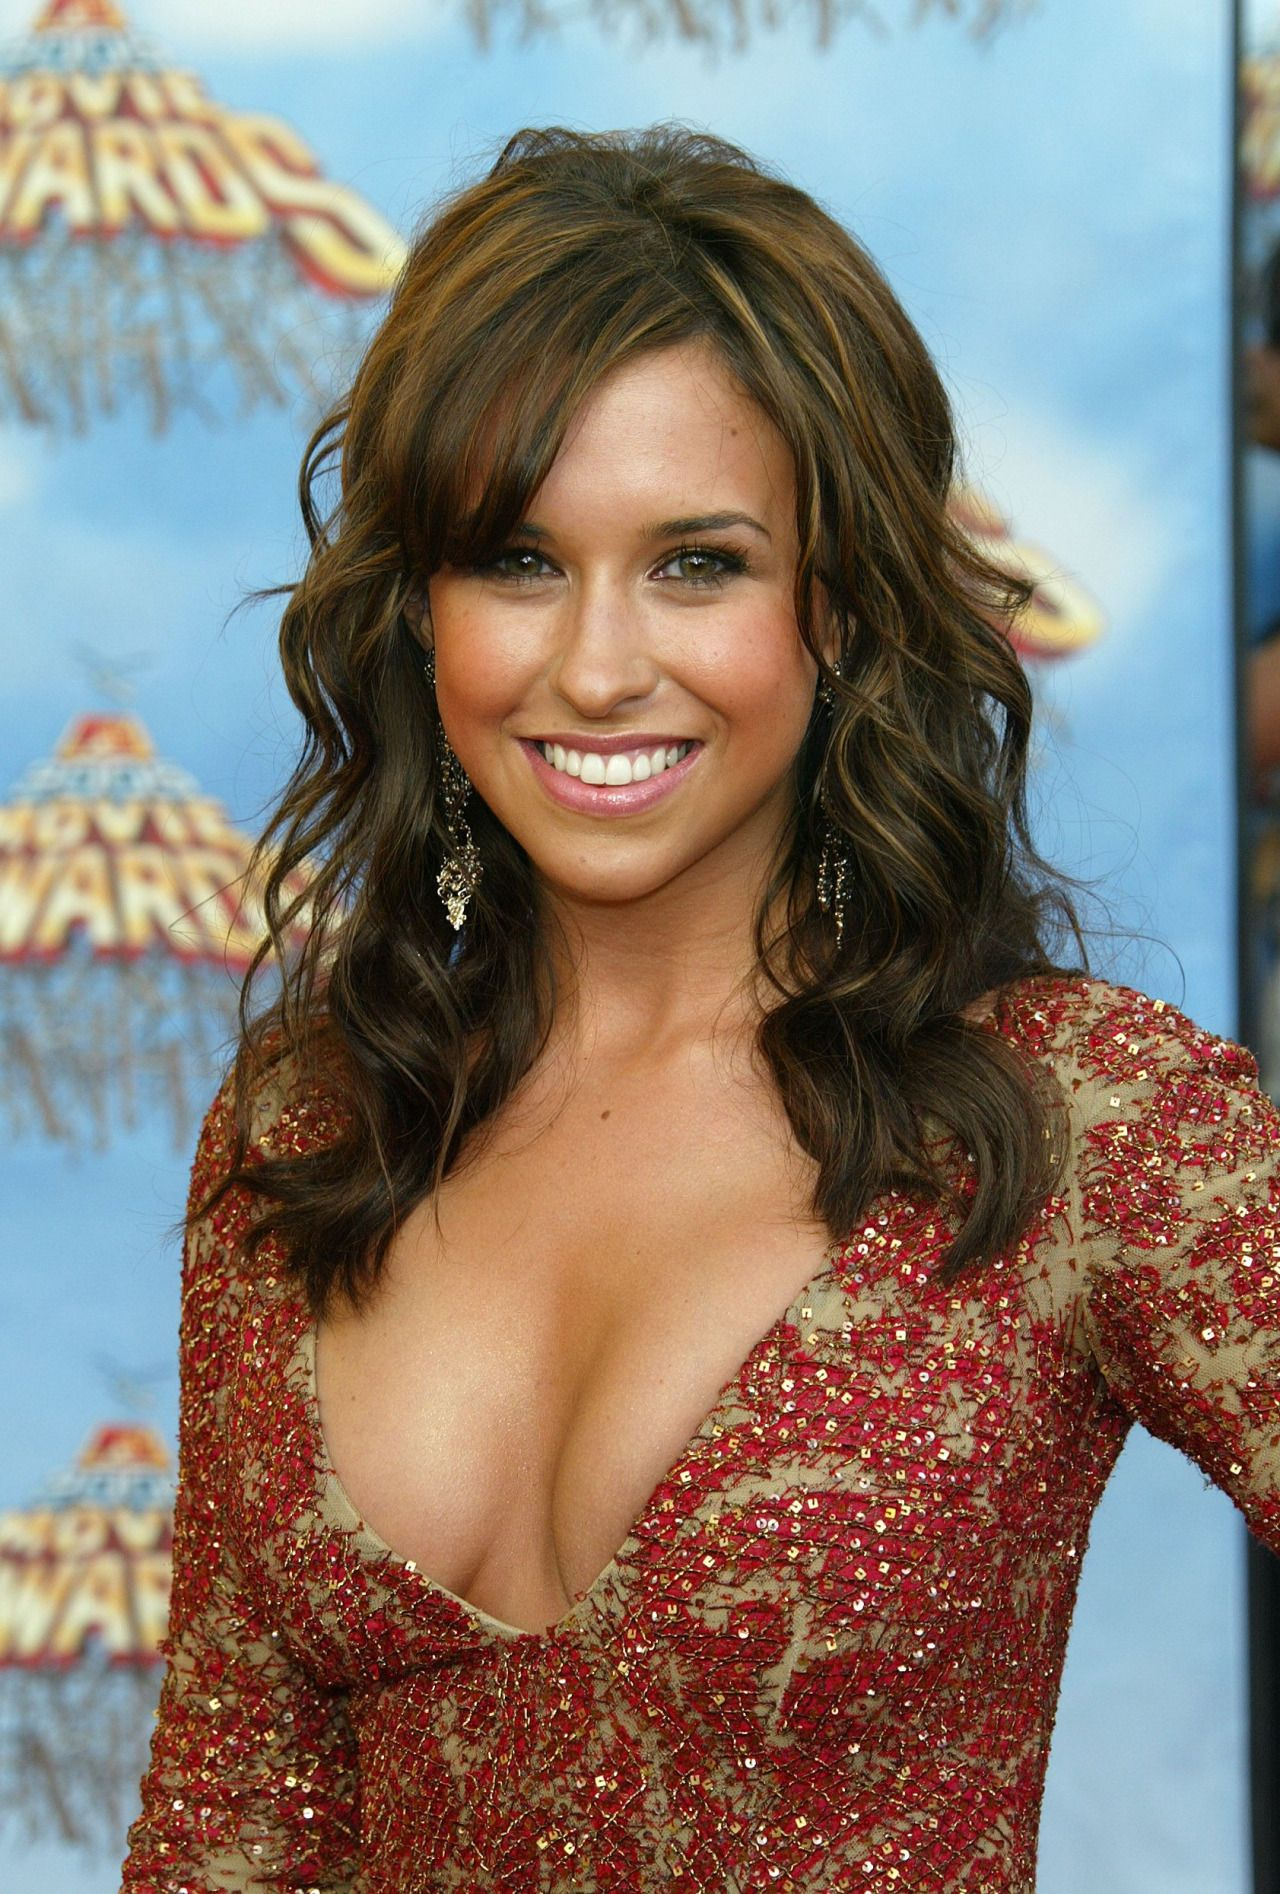 Lacey Chabert hot cleavage pic